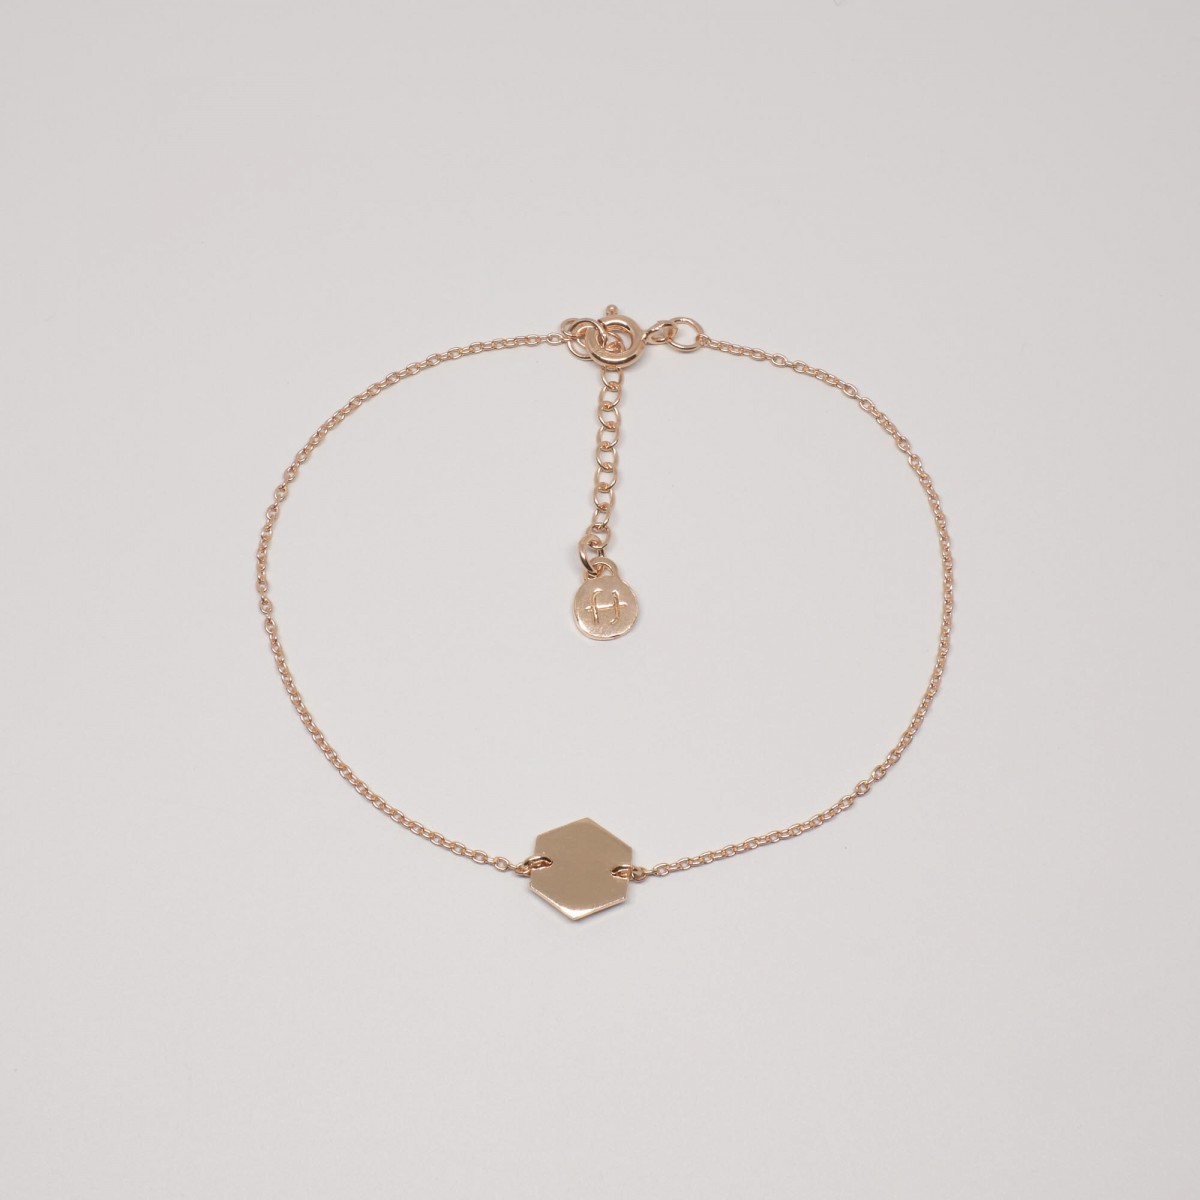 fejn jewelry - Armband 'hexagon'